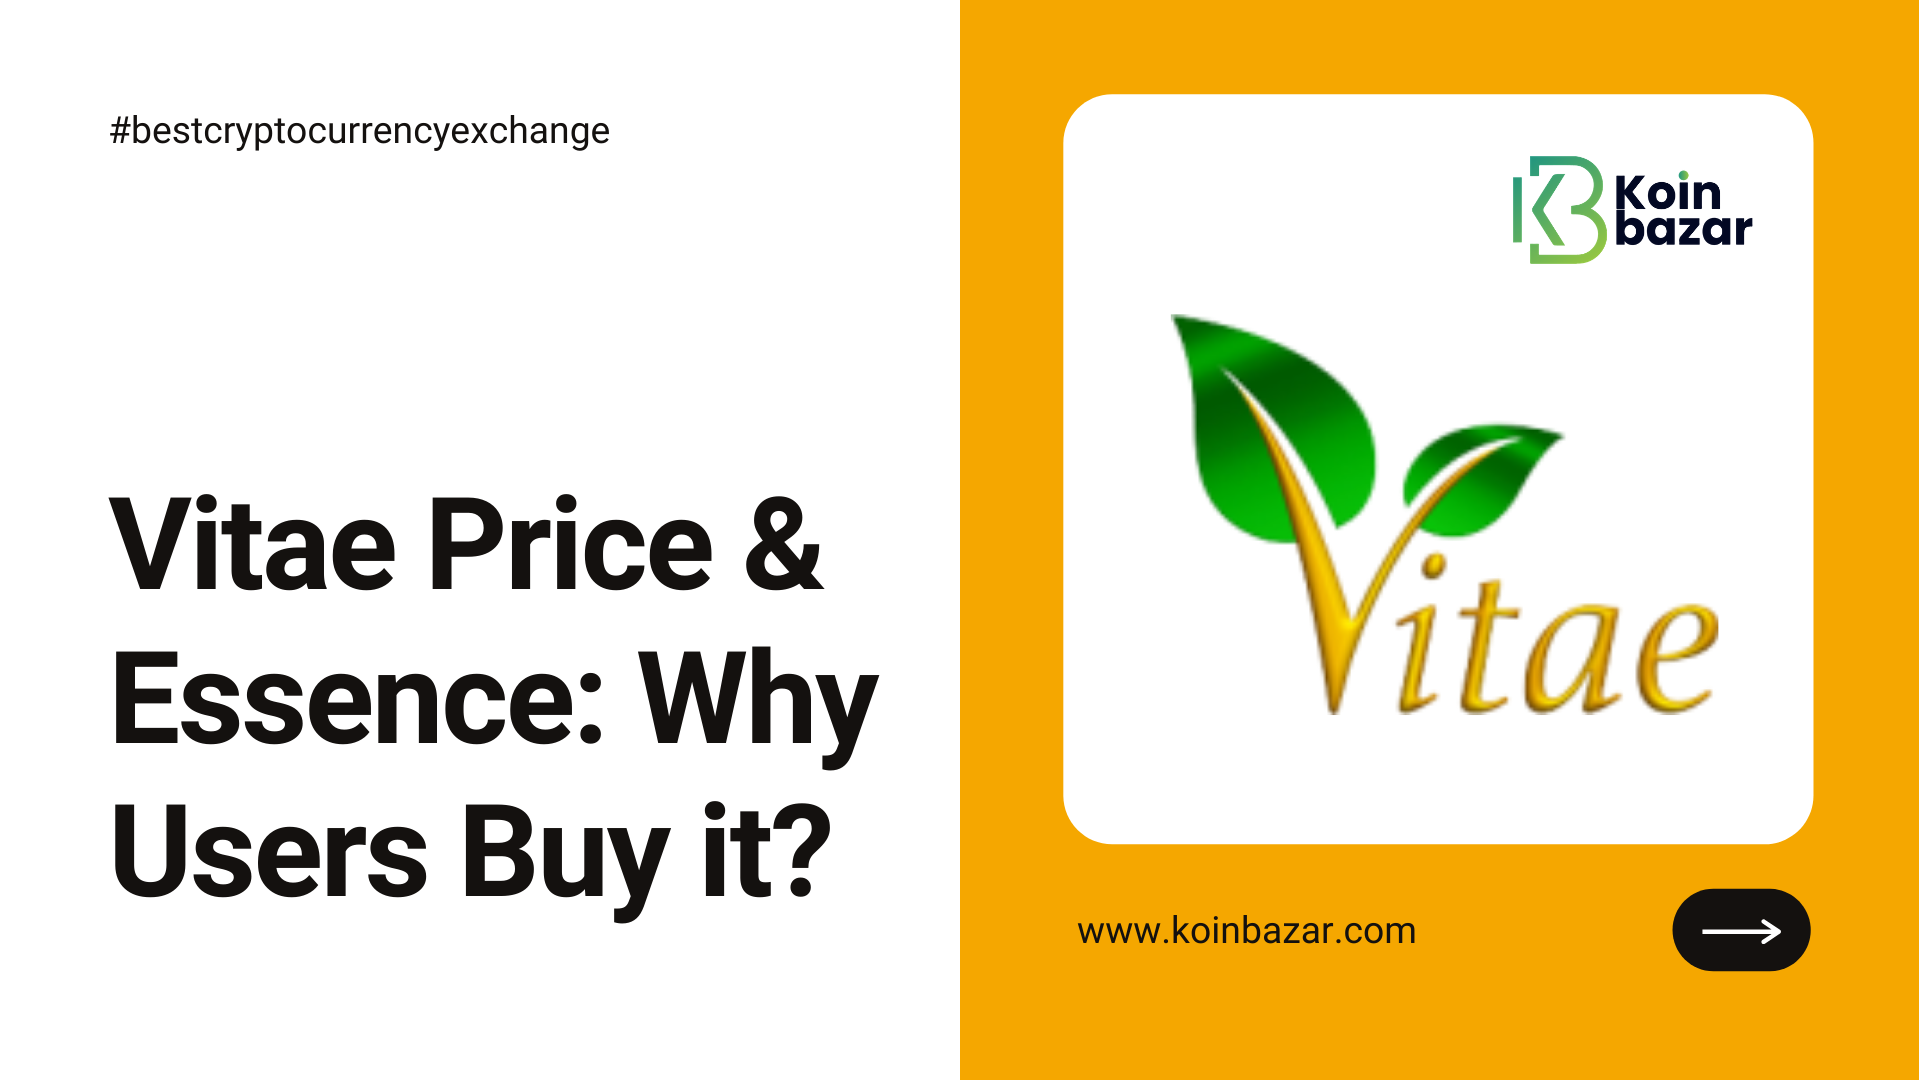 Article about Vitae Price and Essence: why Users Buy it